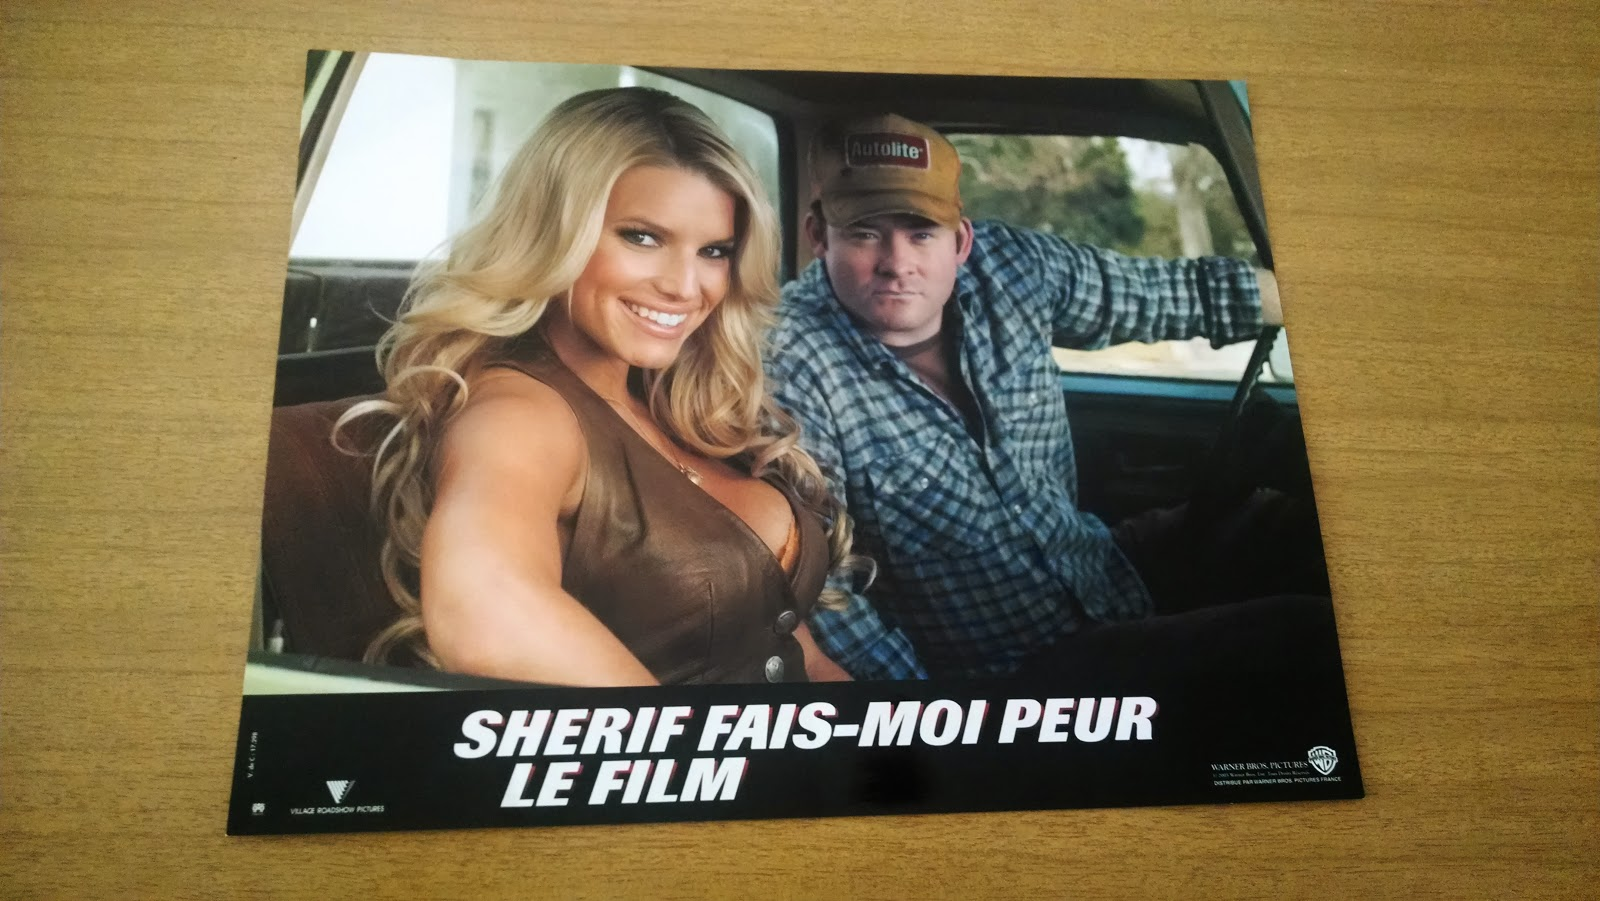 dukes of hazzard collector new dukes stuff 7 10 2014 movie lobby cards party blowers more